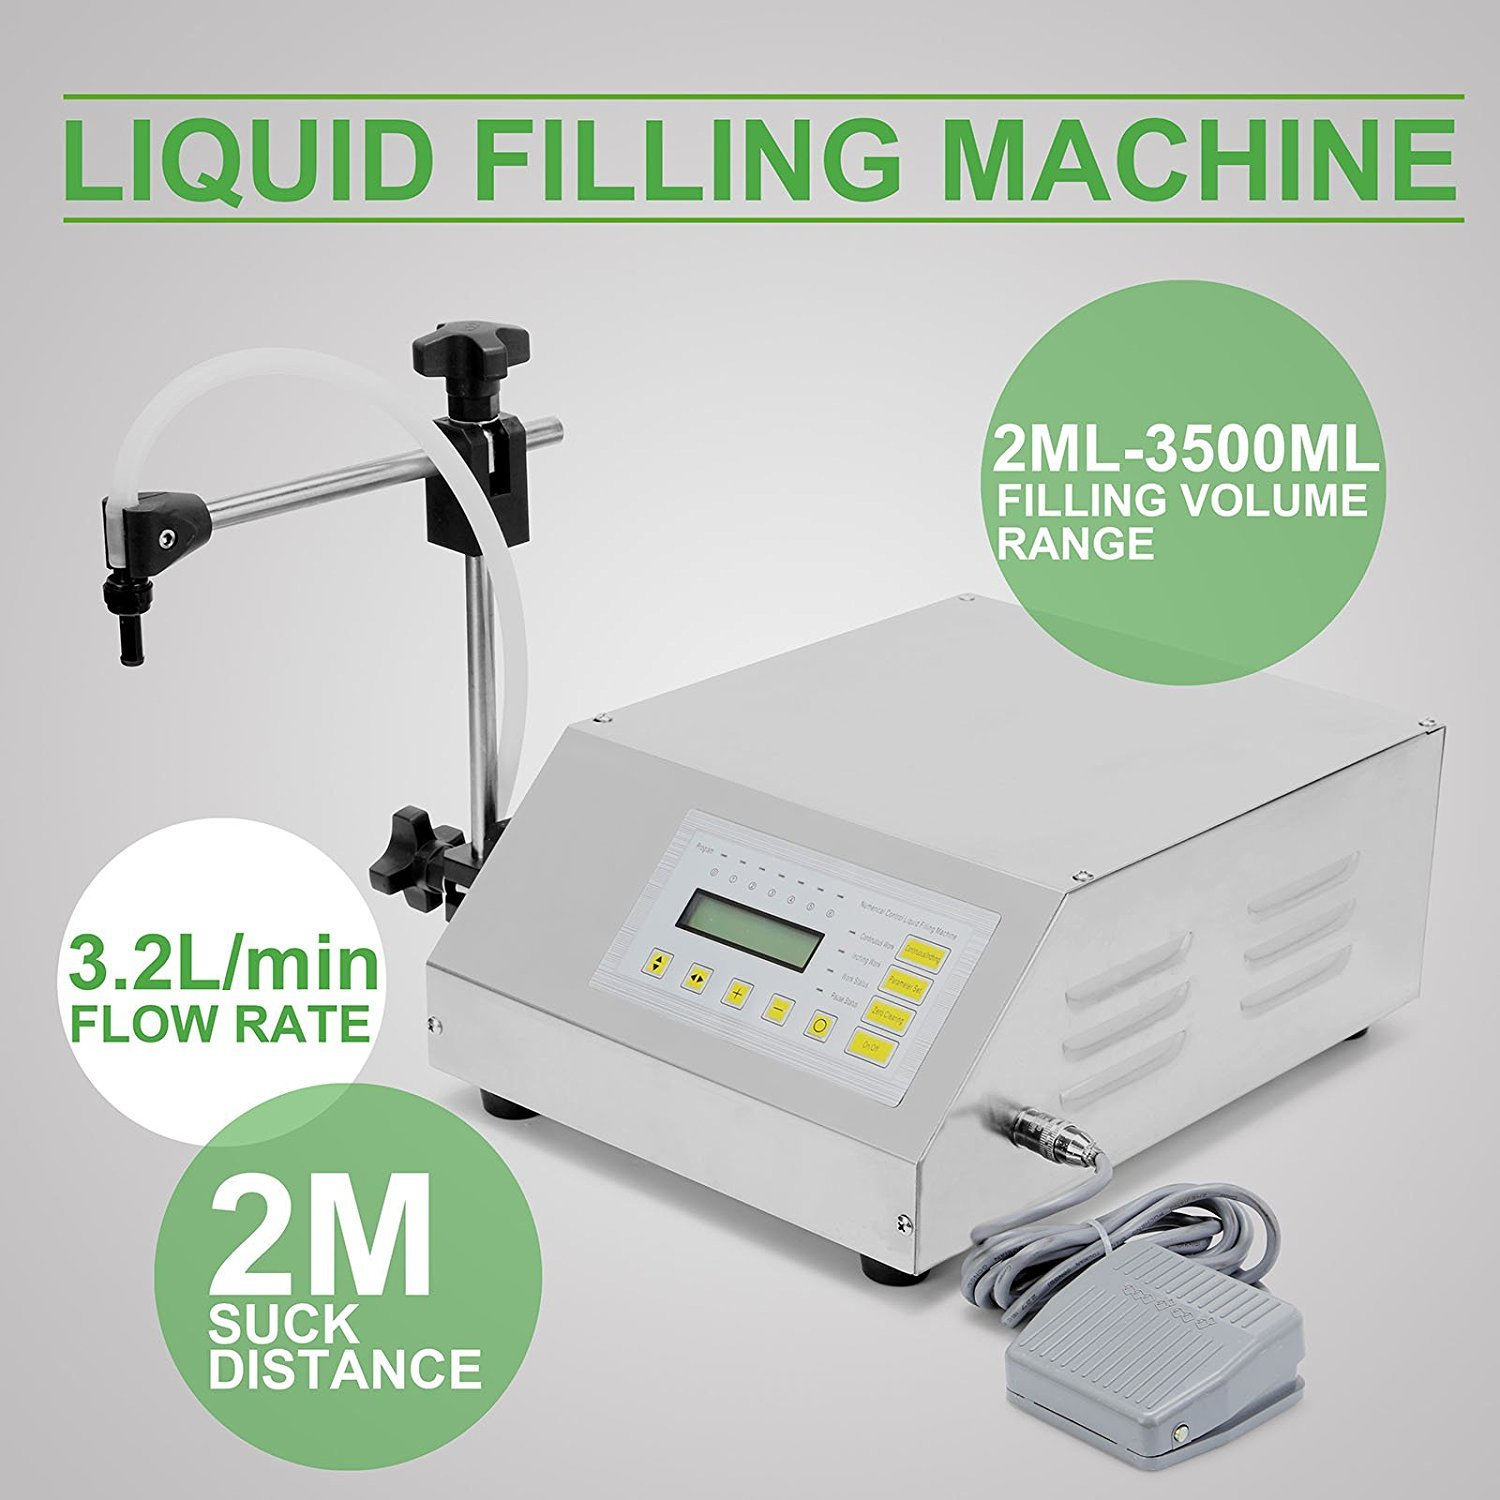 Numerical Digital Control Pump Drink Water Liquid Filling Machine Gfk-160 (2ml-3500ml) 110v for USA 220v for Others by Youlian